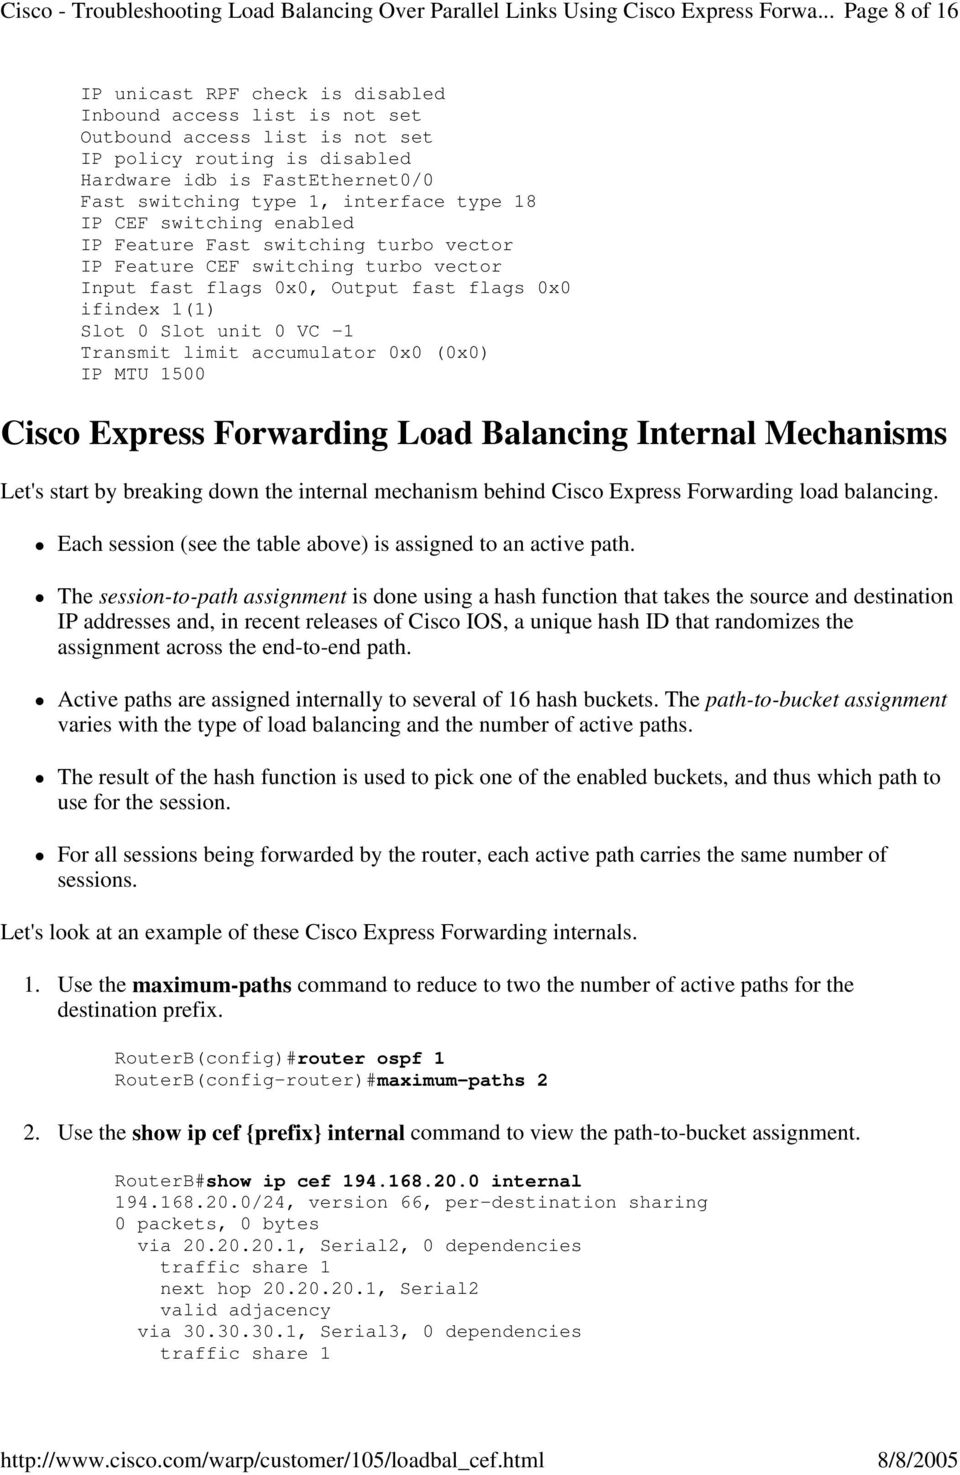 Express pdf cisco forwarding